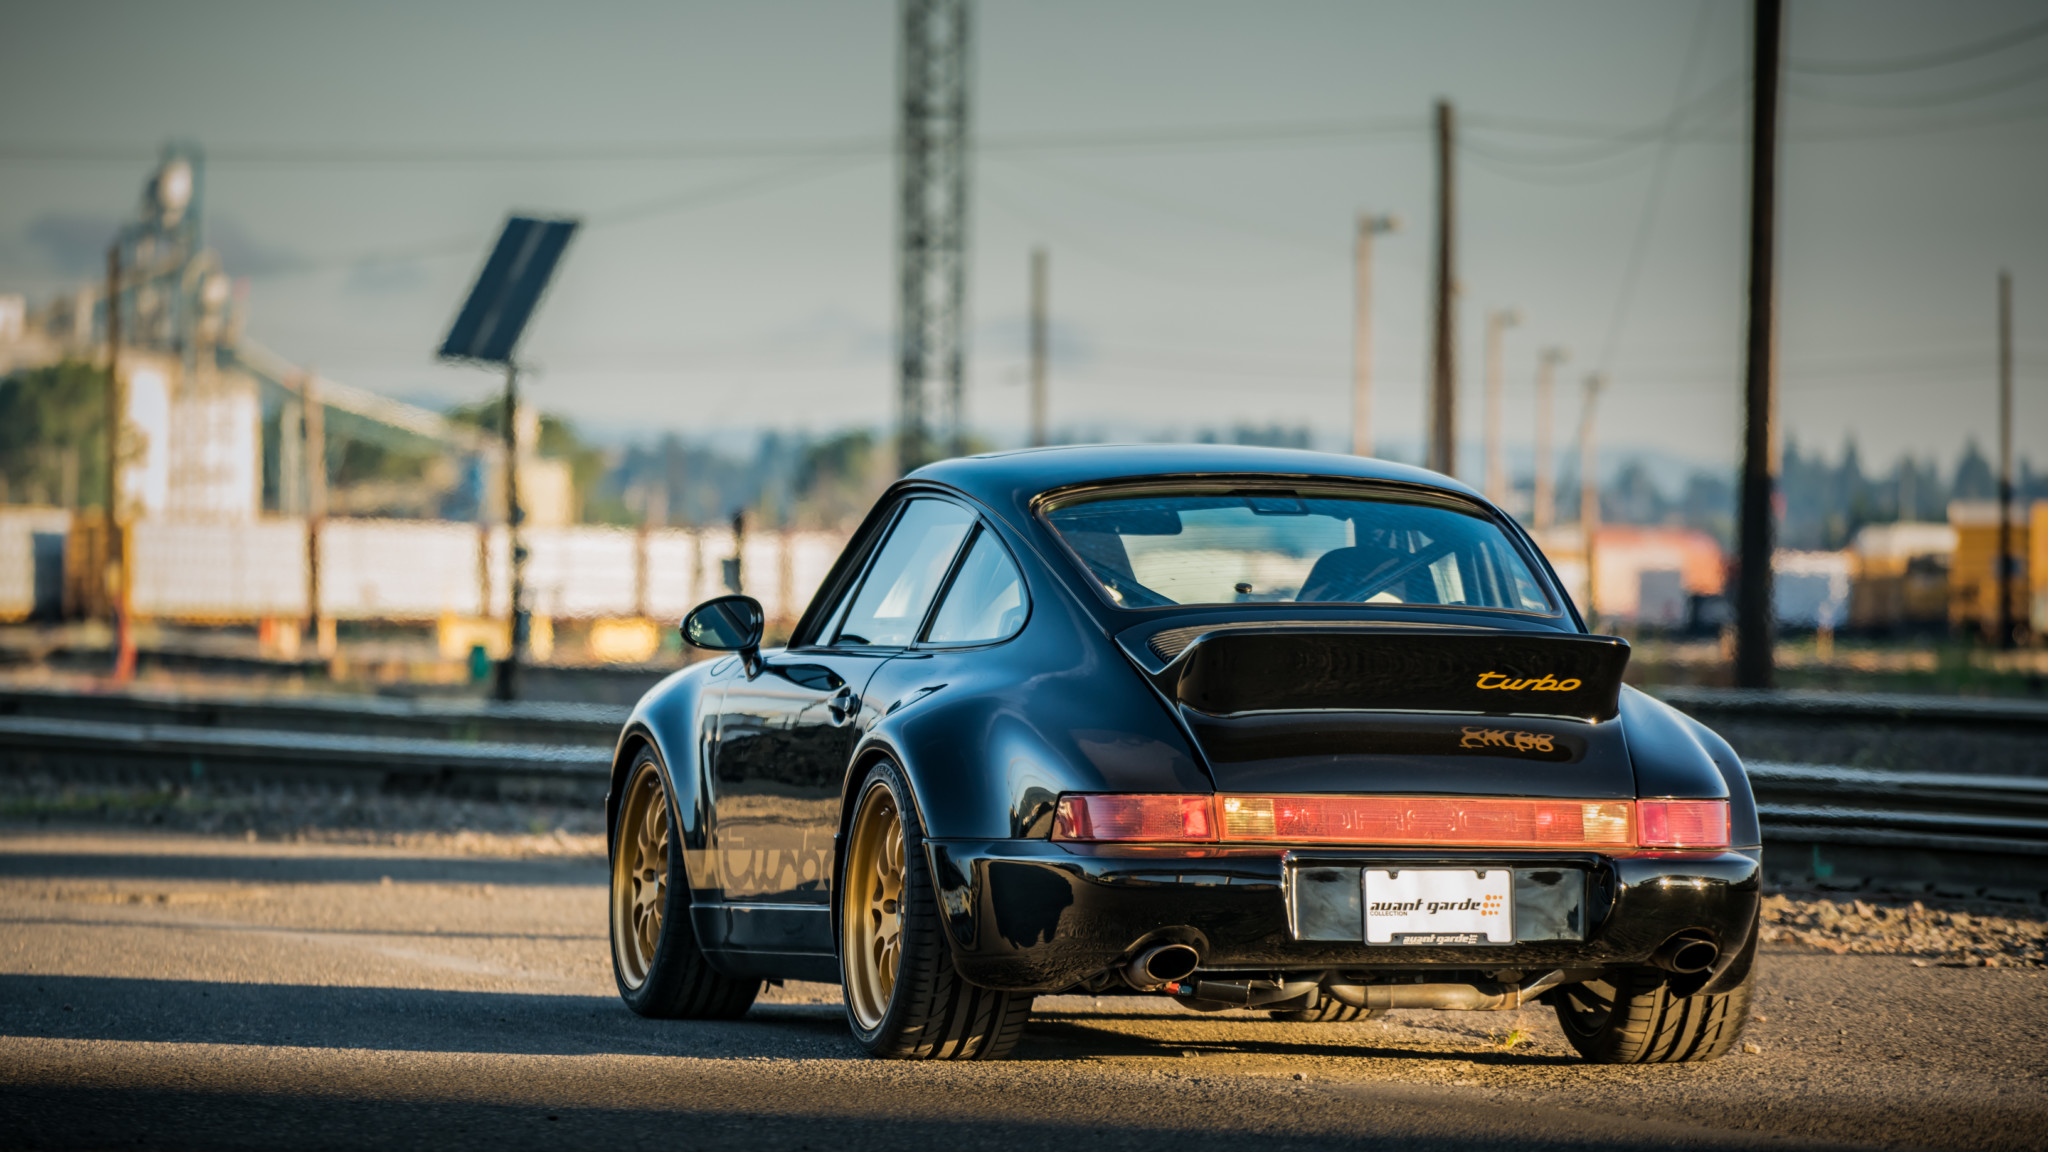 1991 Porsche 964 Turbo Hd Wallpaper Background Image 2048x1152 Id 1018376 Wallpaper Abyss